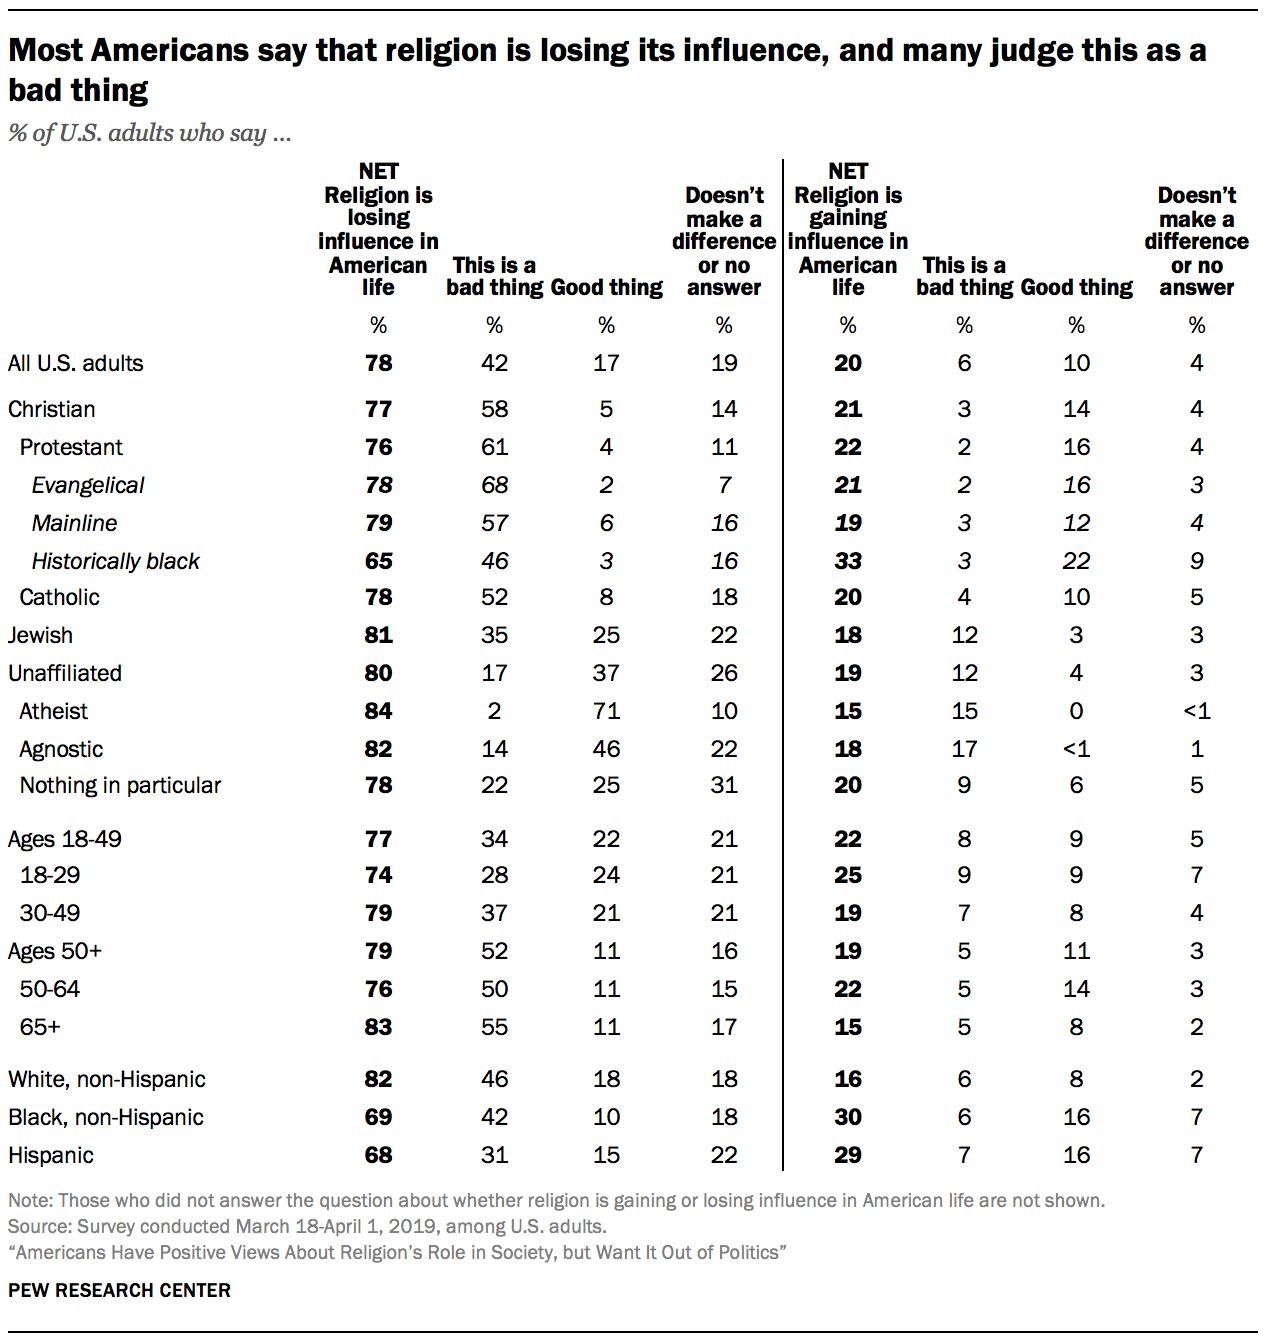 Most Americans say that religion is losing its influence, and many judge this as a bad thing